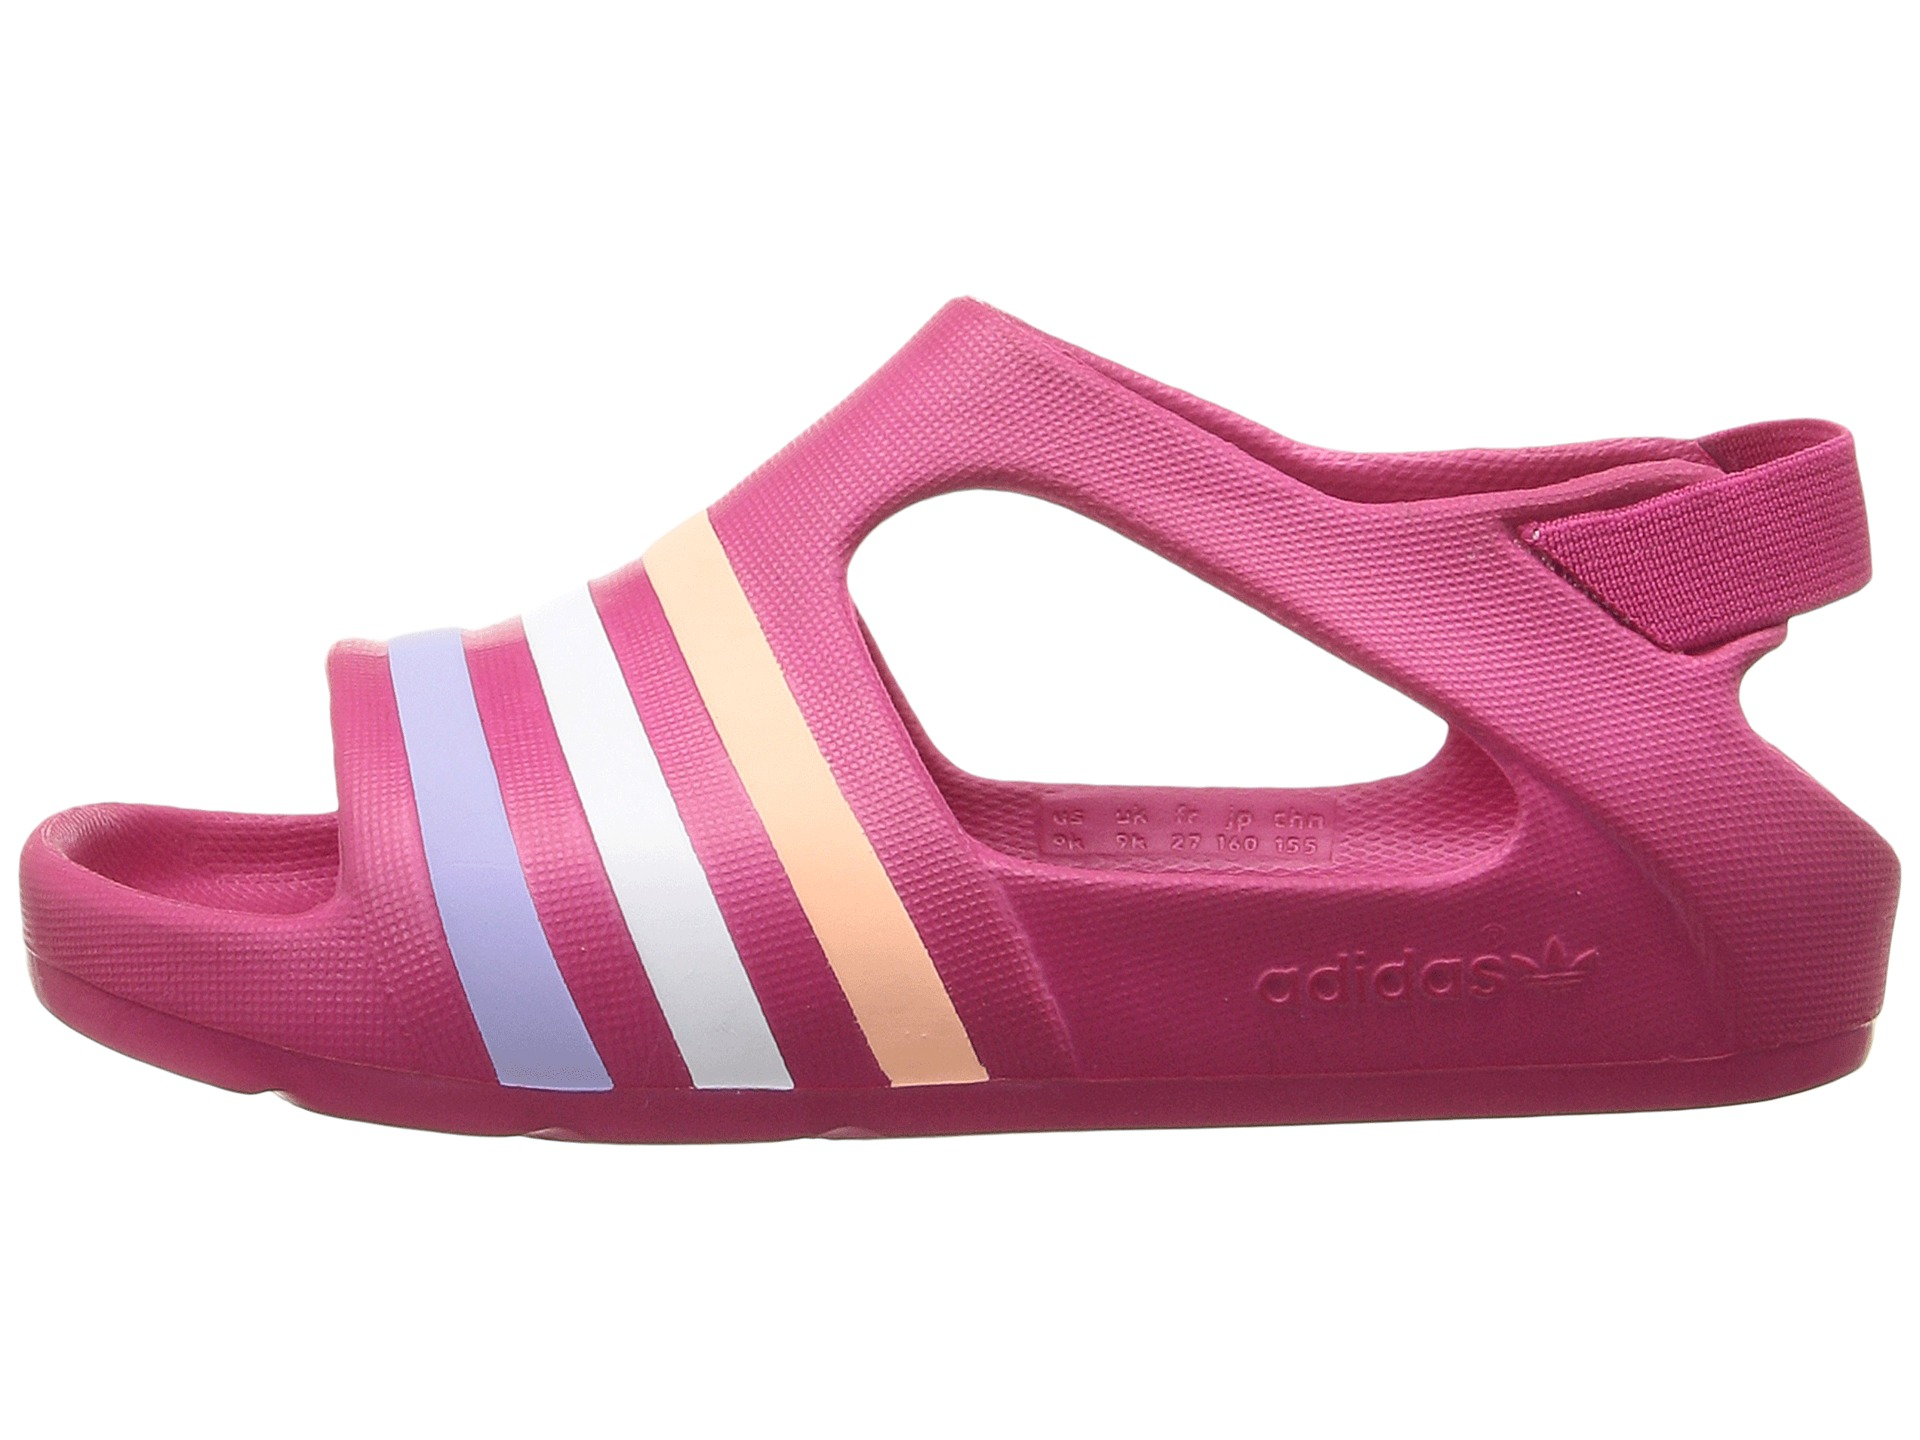 Adidas adilette play toddlers on sale >off55%)